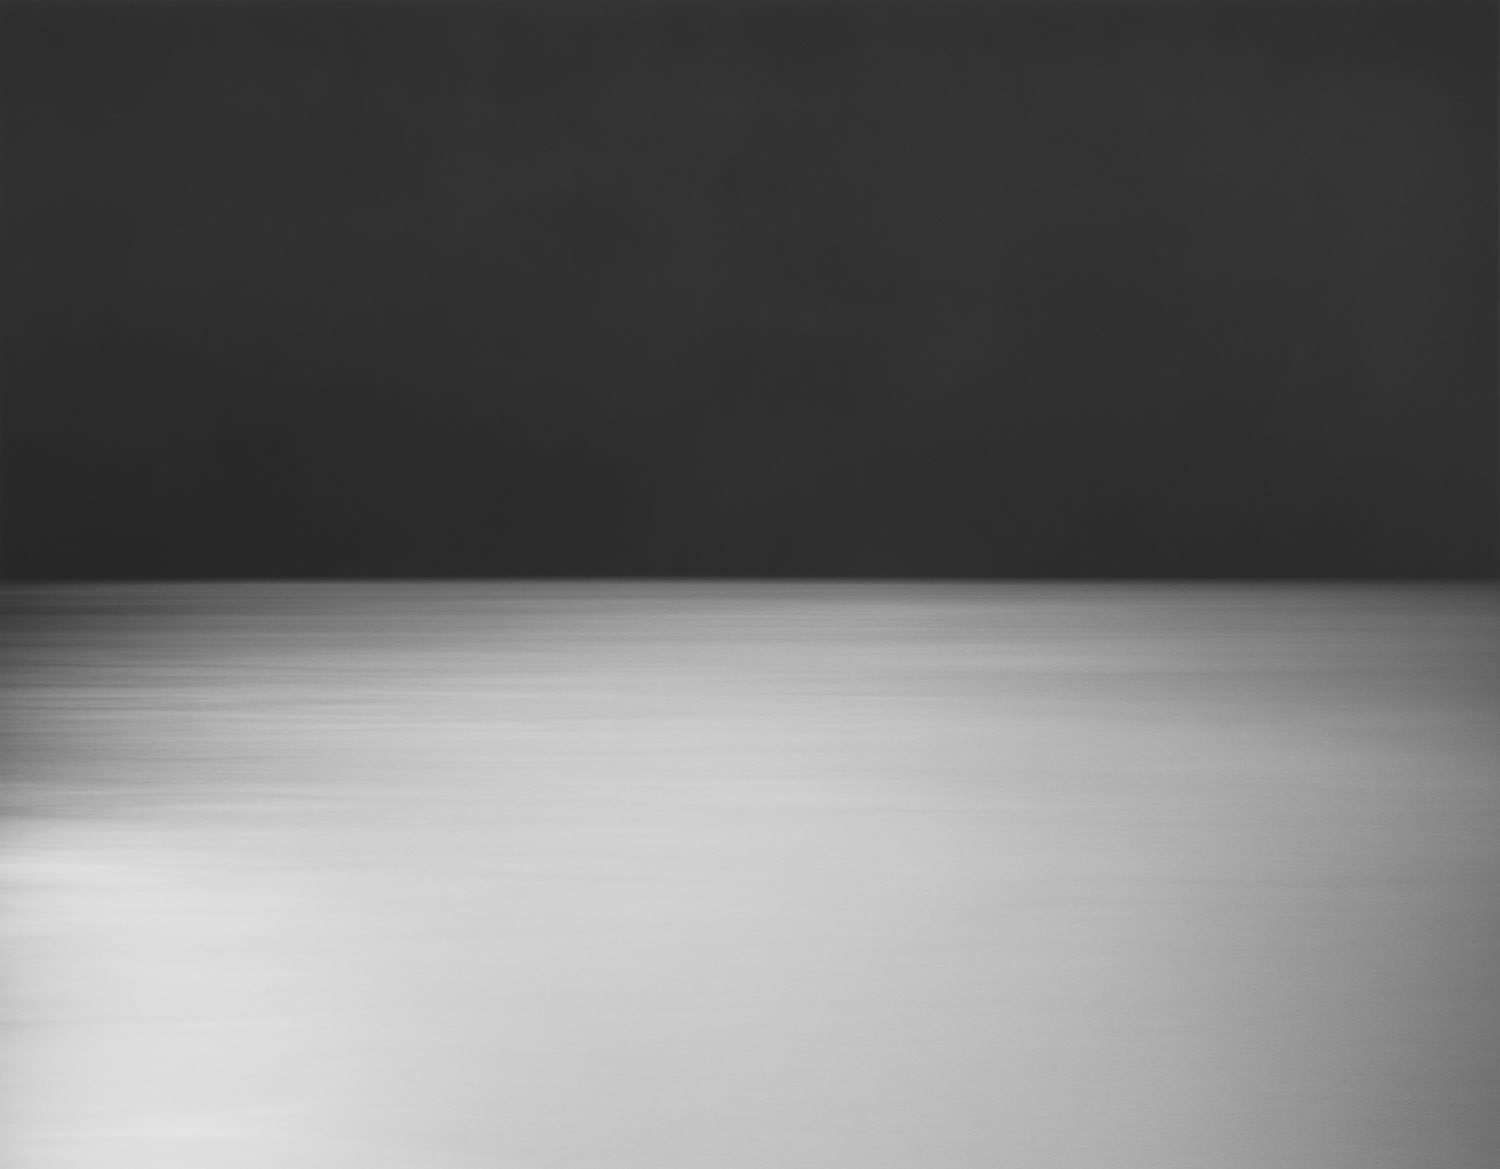 A grayscale image of a horizon line with a dark sky and lighter ground.